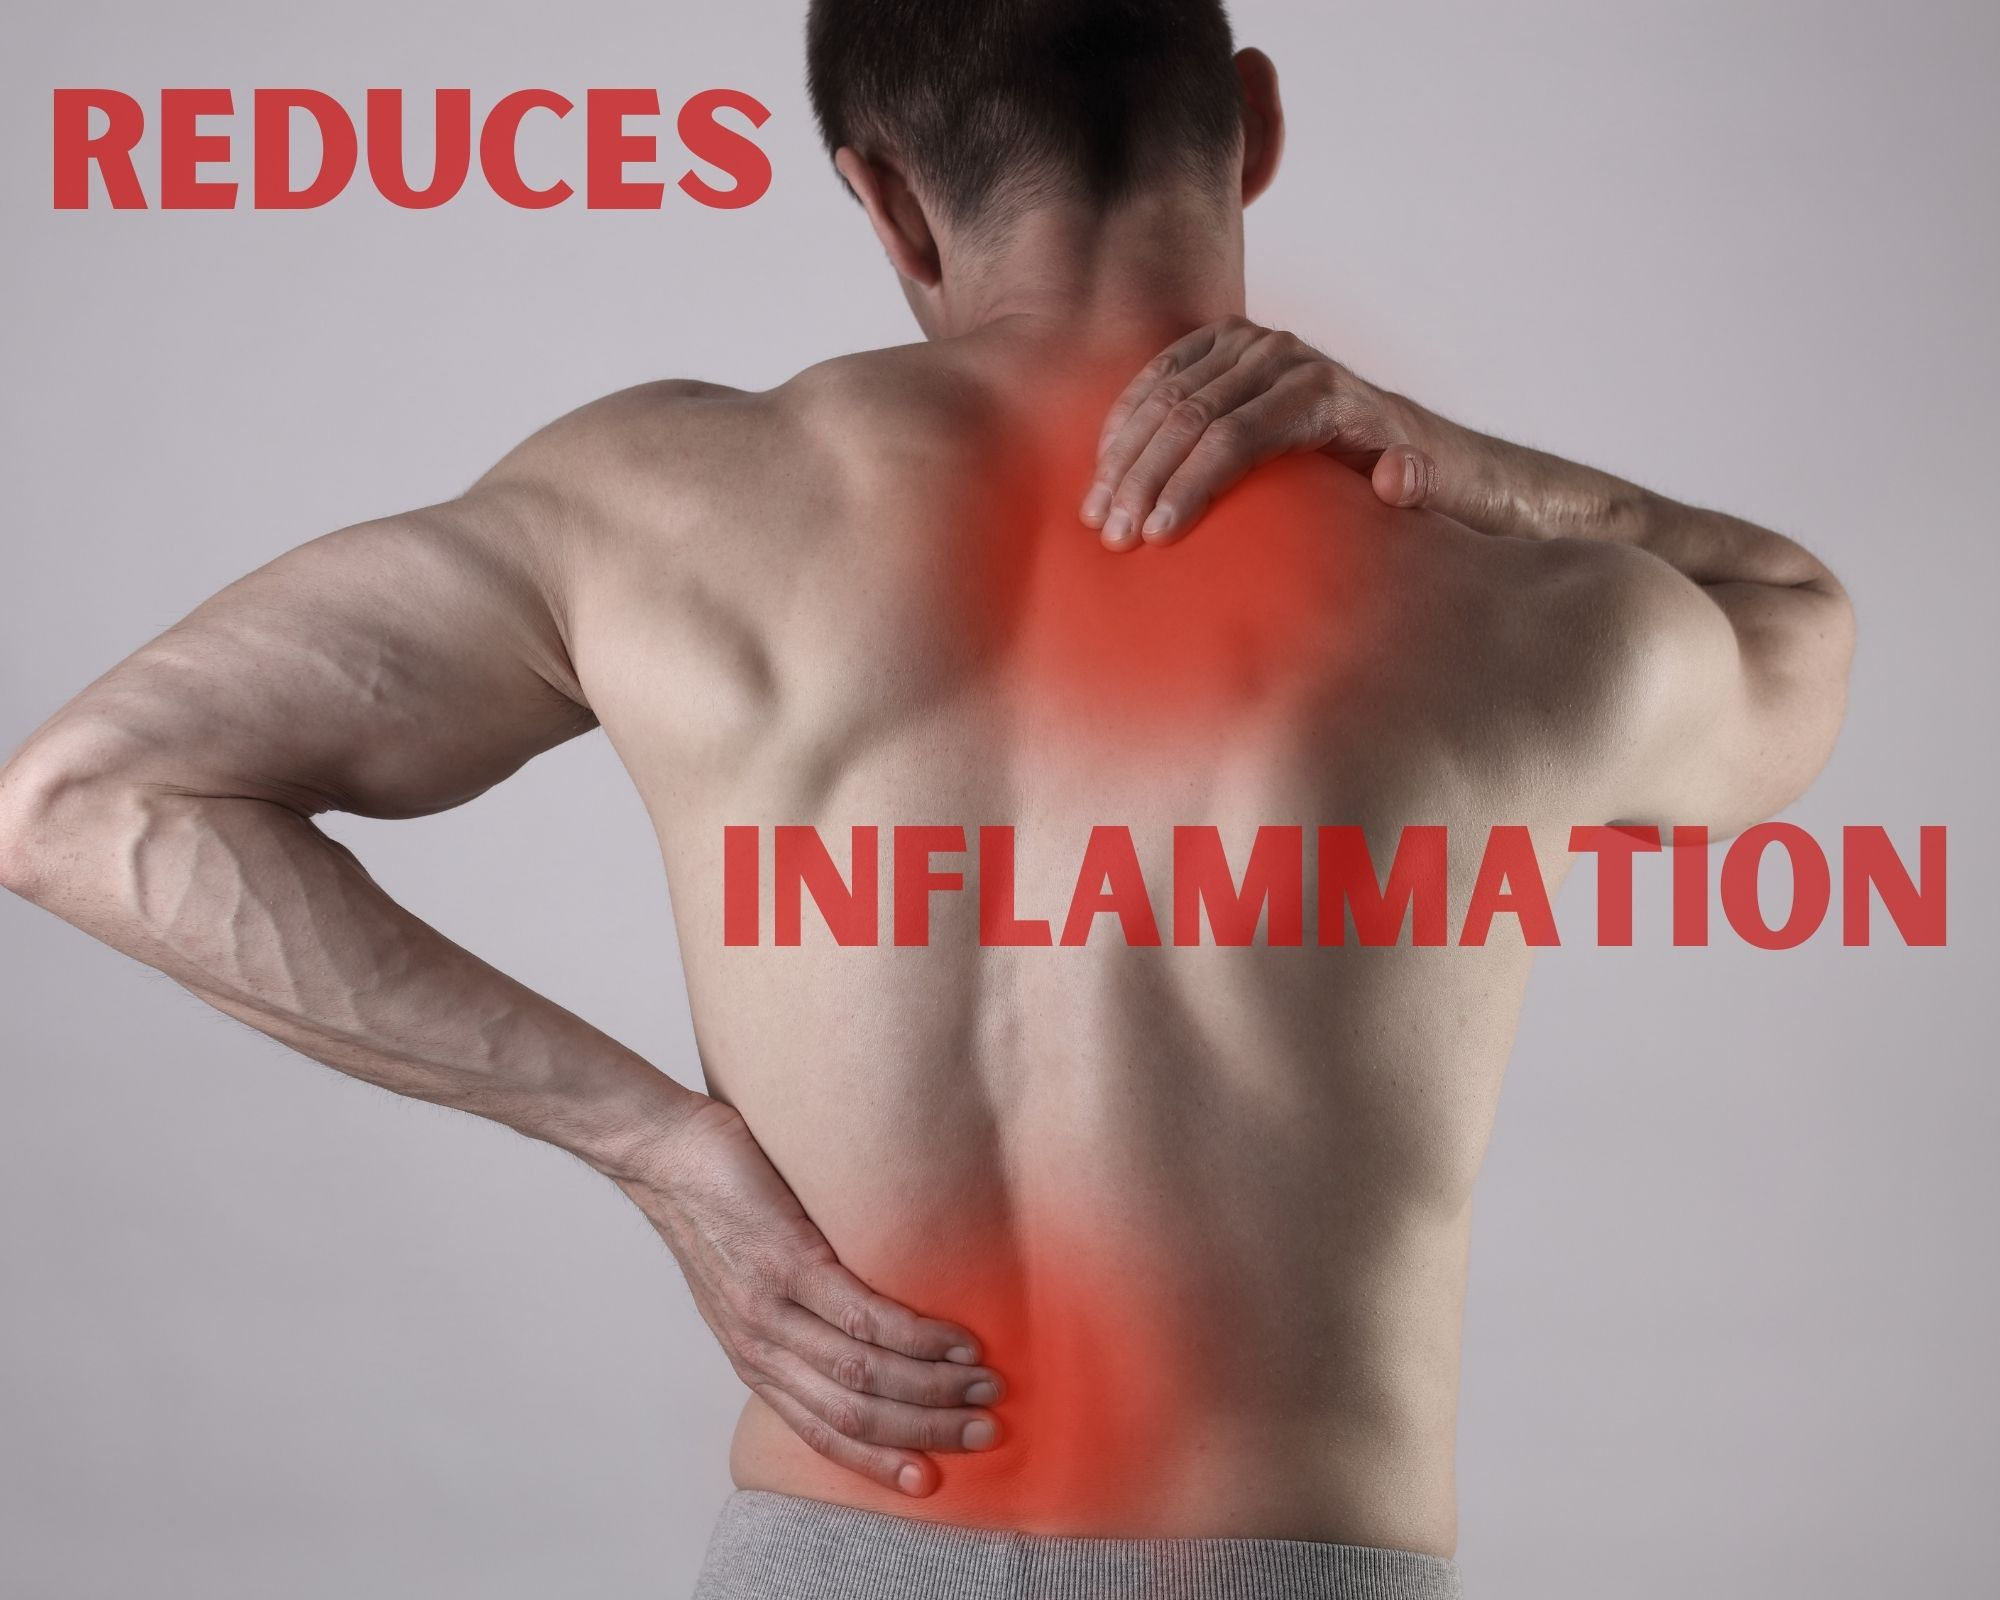 Man with Inflammation - Wording reduces inflammation